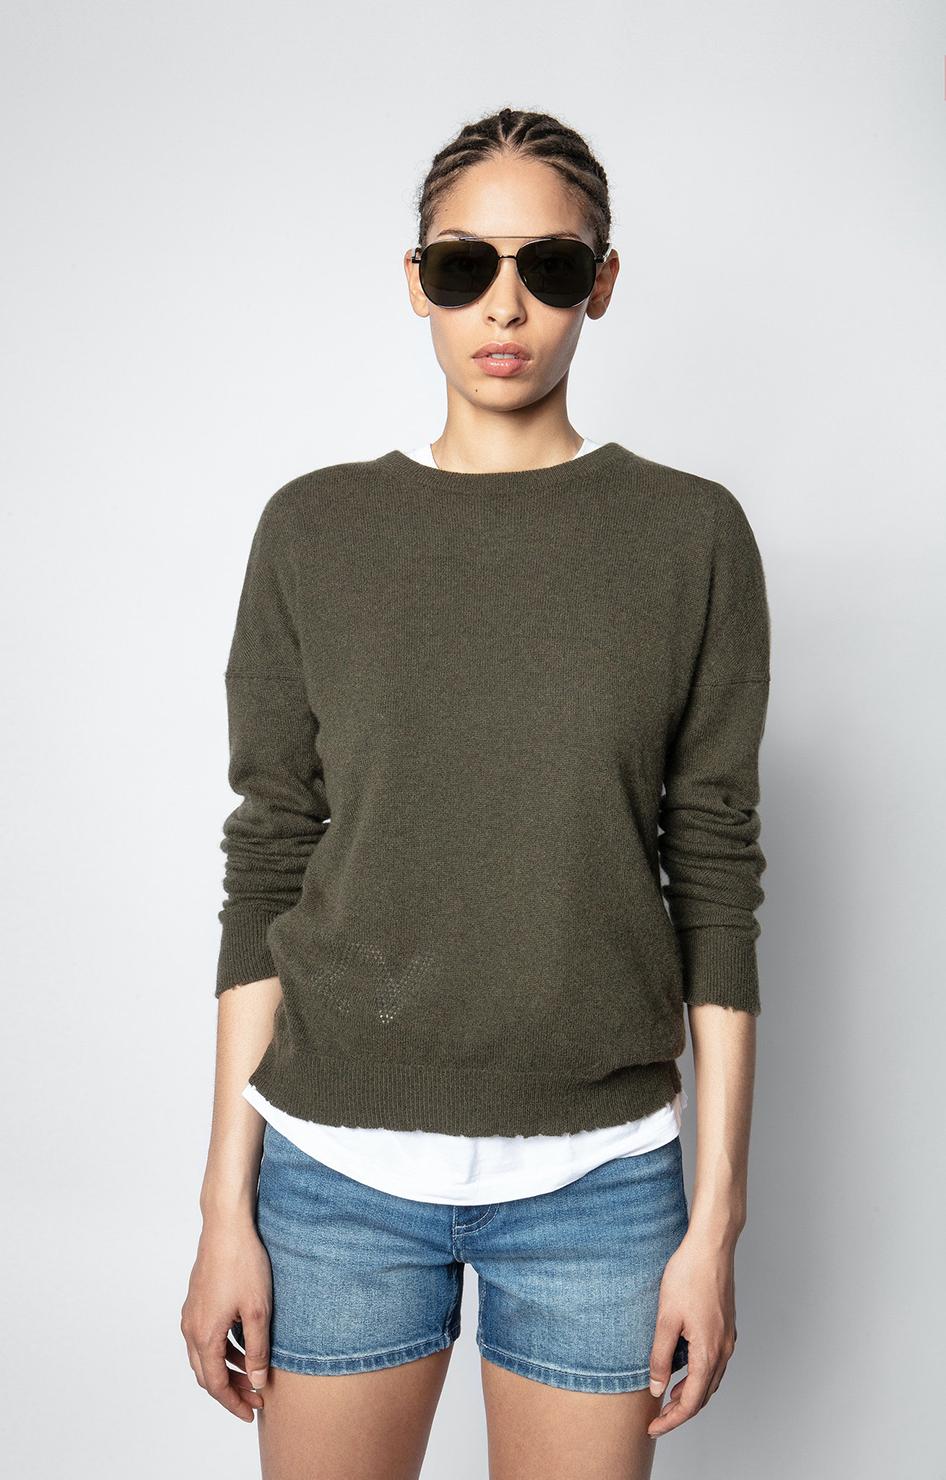 Restock - Cici Patch Stars Cashmere Sweater